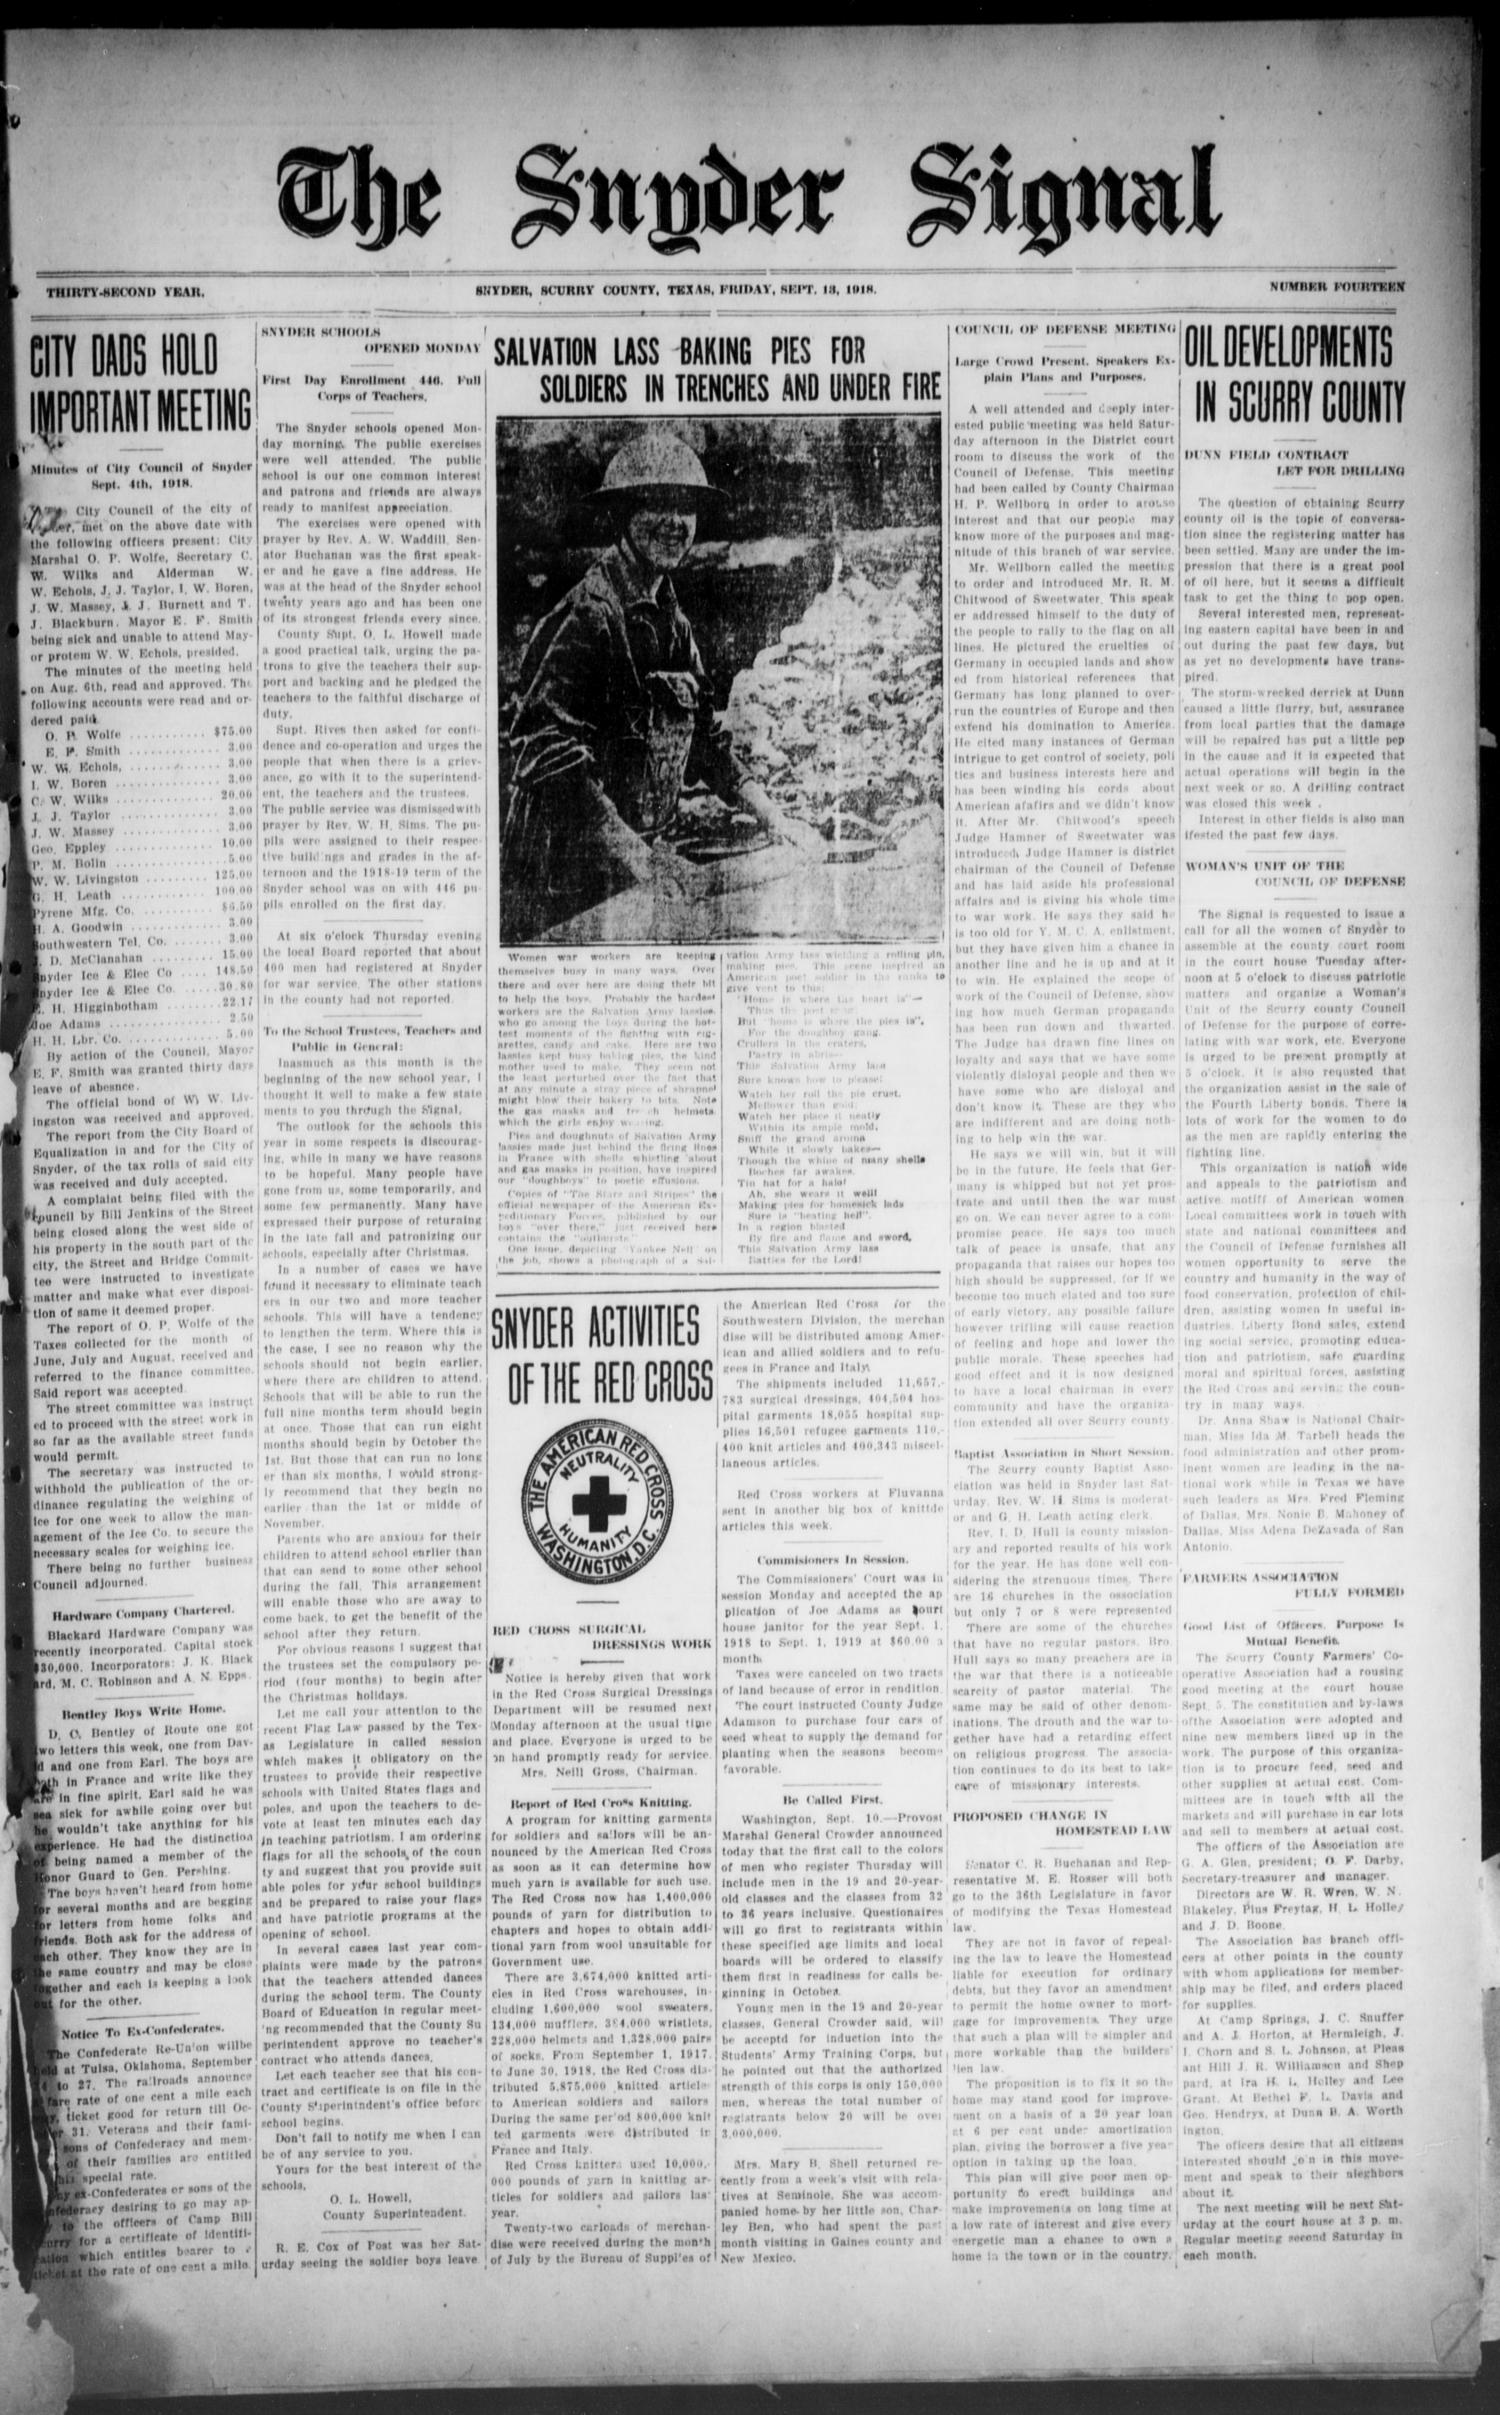 The Snyder Signal. (Snyder, Tex.), Vol. THIRTY-SECOND YEAR, No. FOURTEEN, Ed. 1 Friday, September 13, 1918                                                                                                      [Sequence #]: 1 of 8